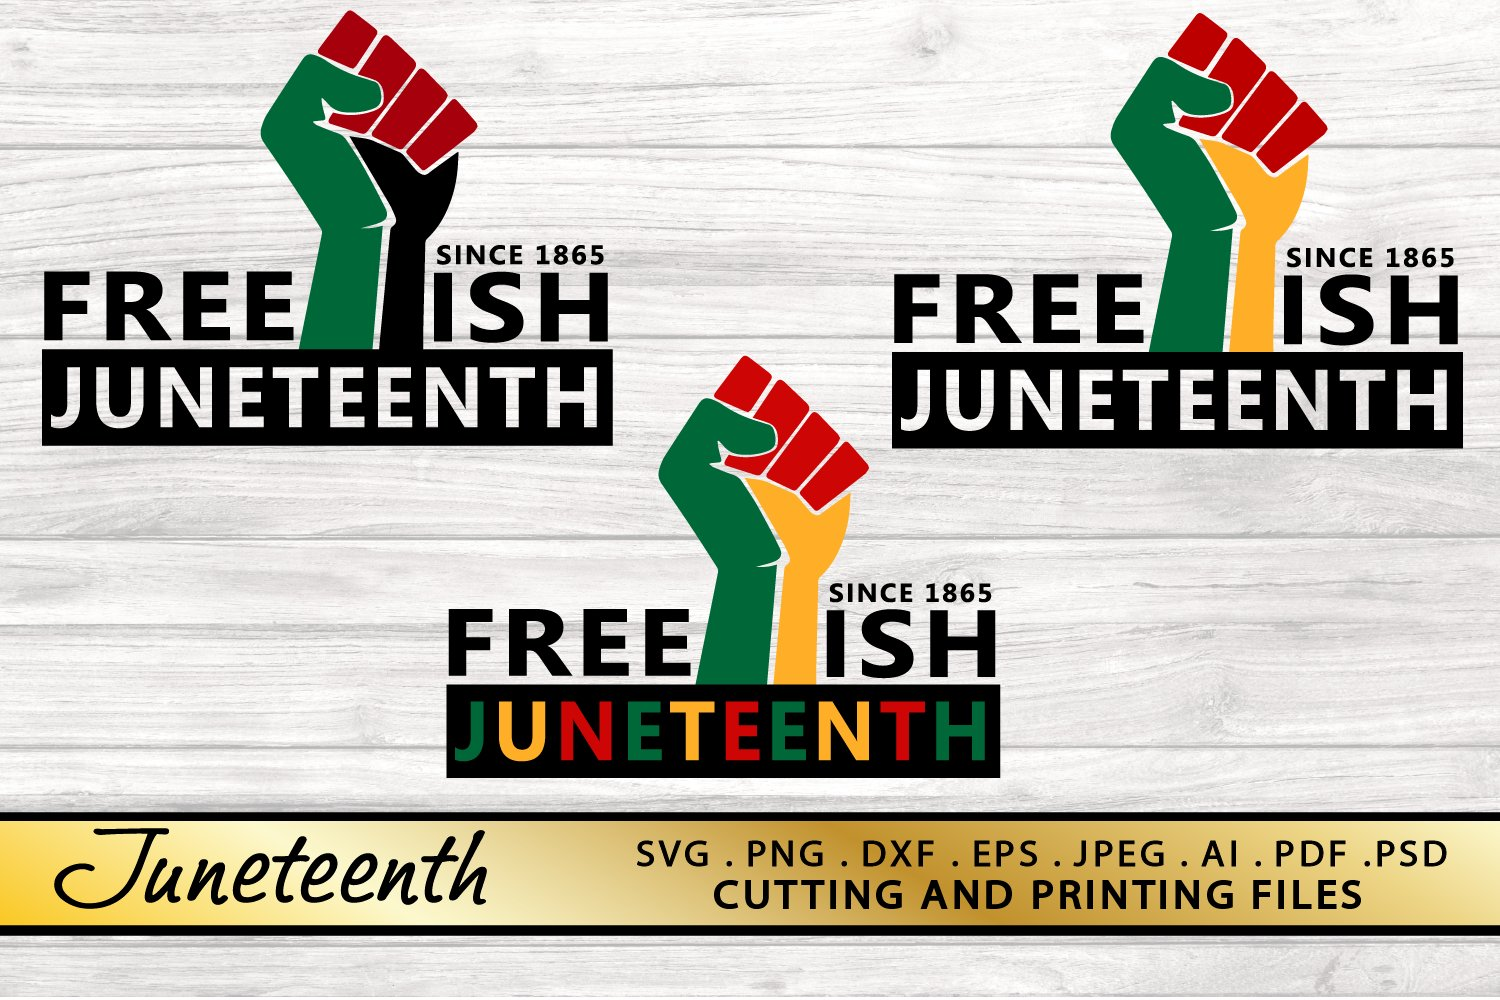 Juneteenth SVG PNG DXF EPS Files for Cutting and Printing example image 4